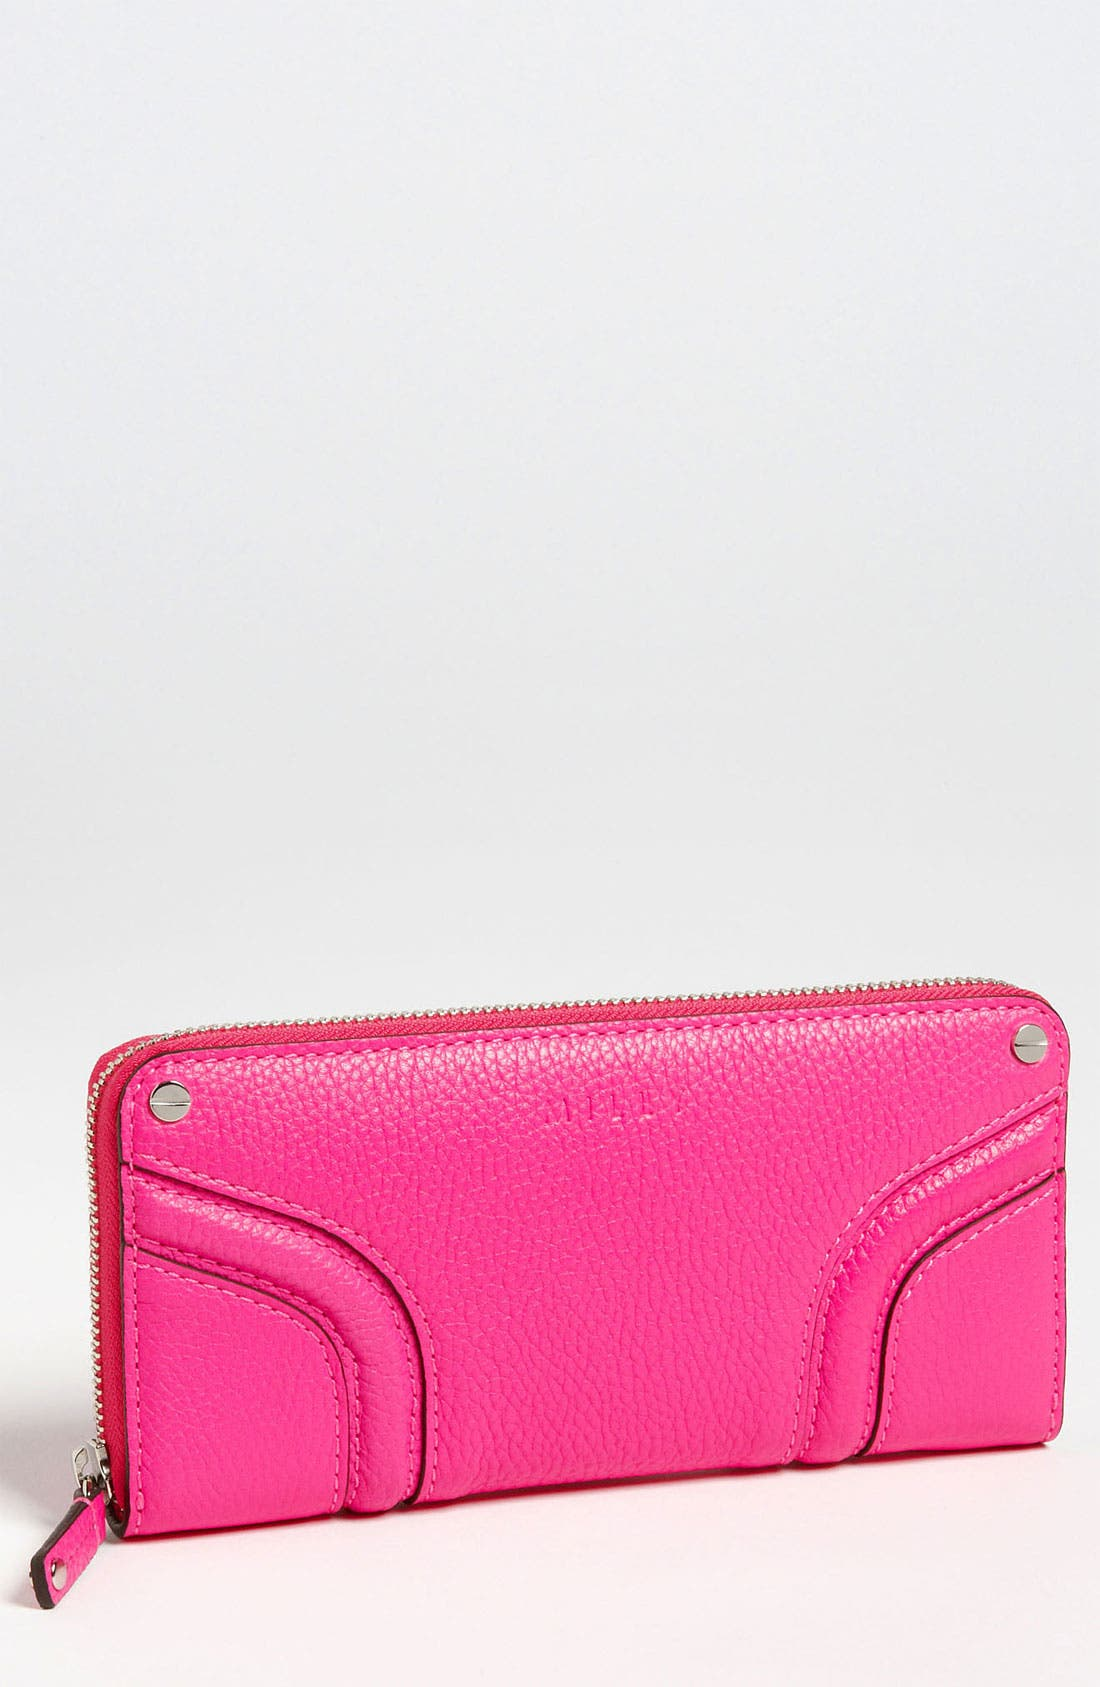 Main Image - Milly 'Zoey' Zip Around Wallet